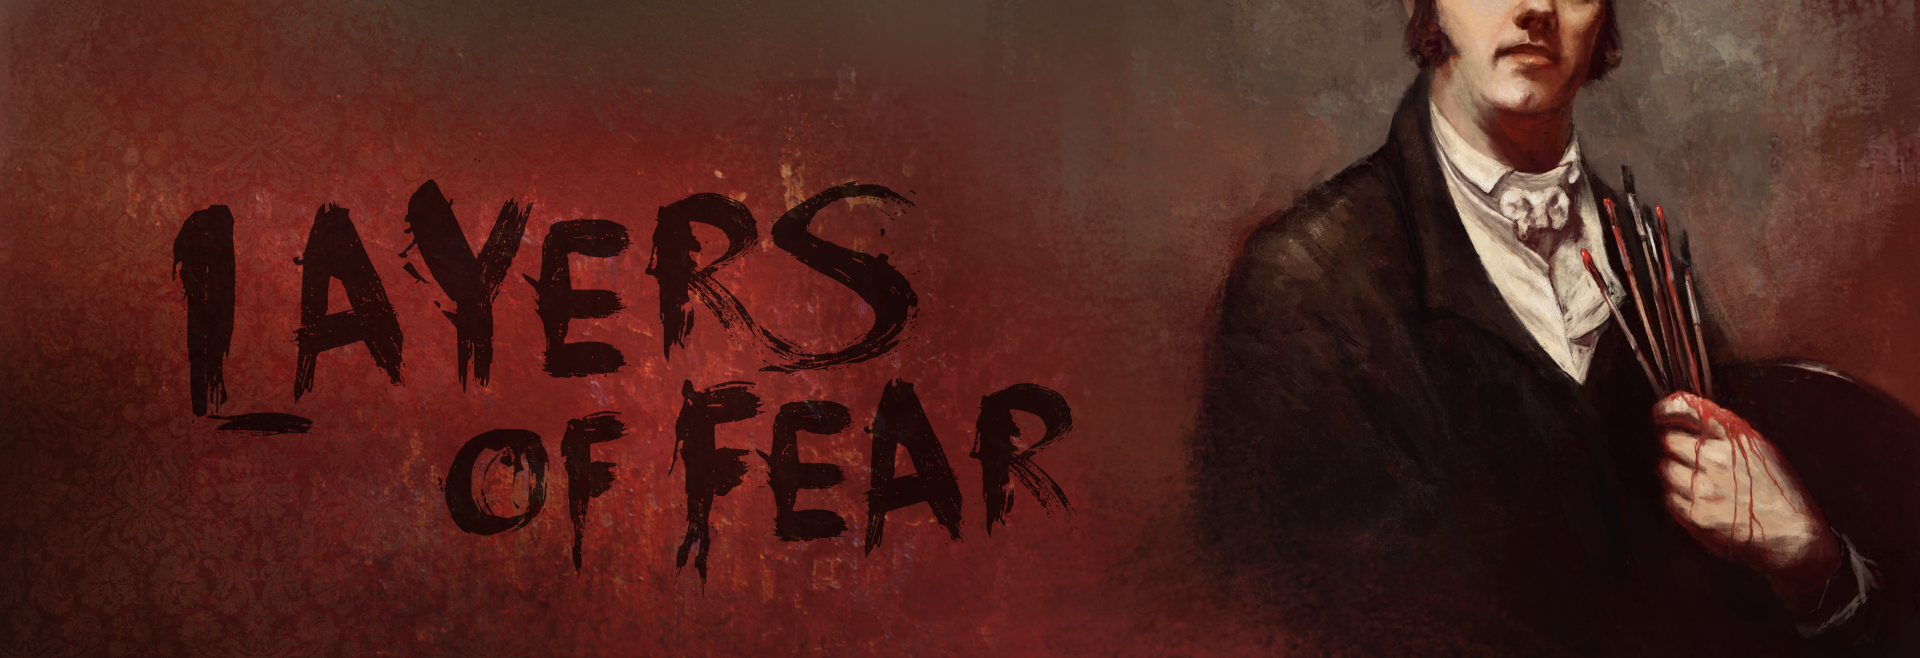 layers_of_fear_promo_1.png